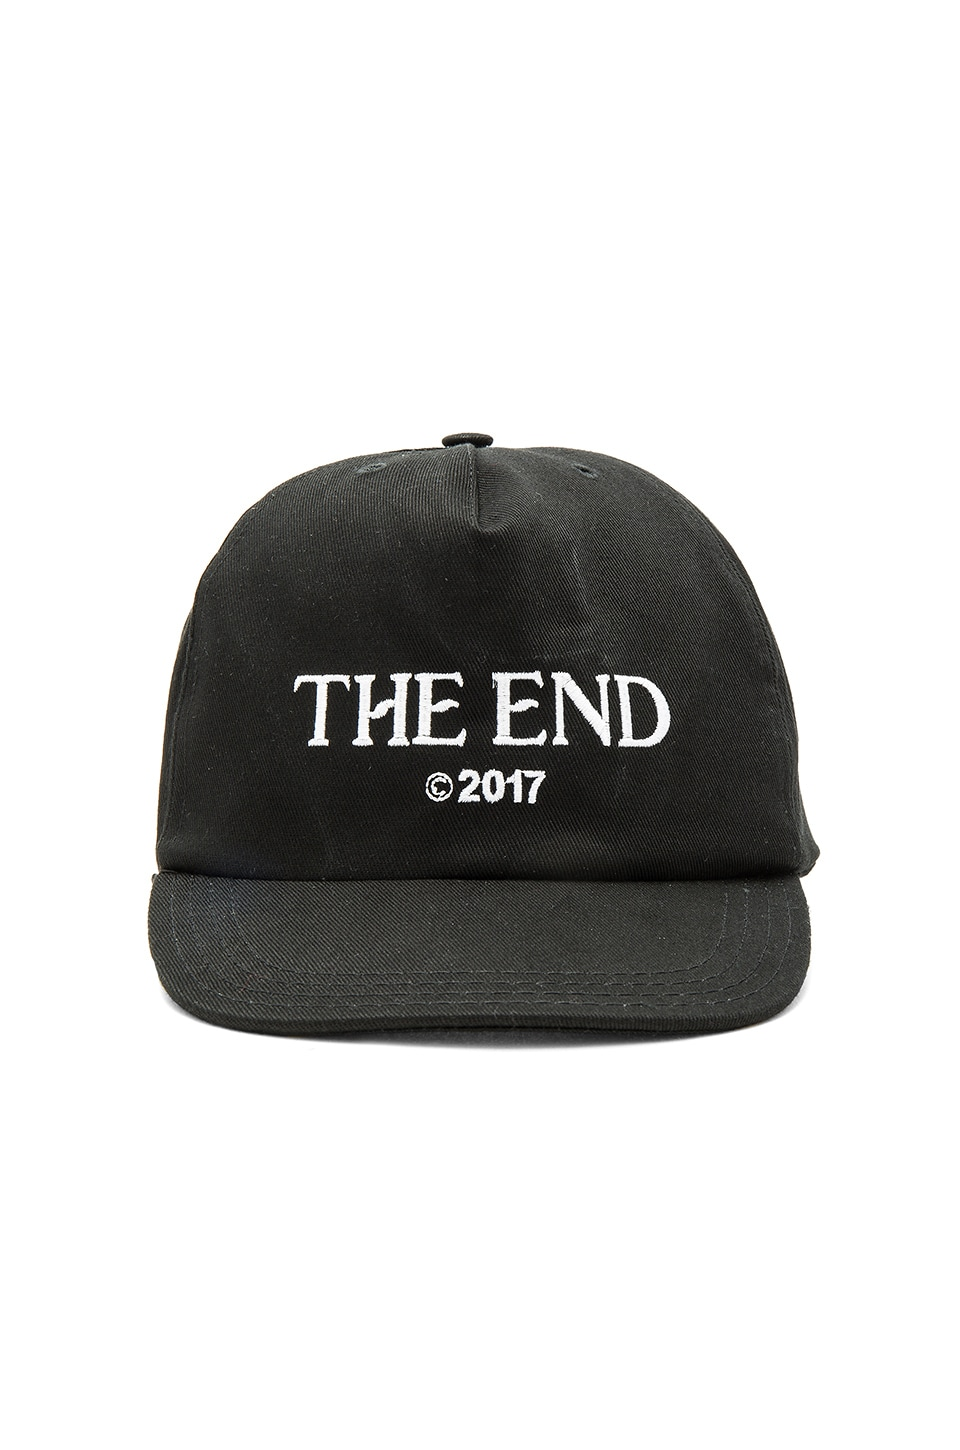 The End Cap by OFF-WHITE